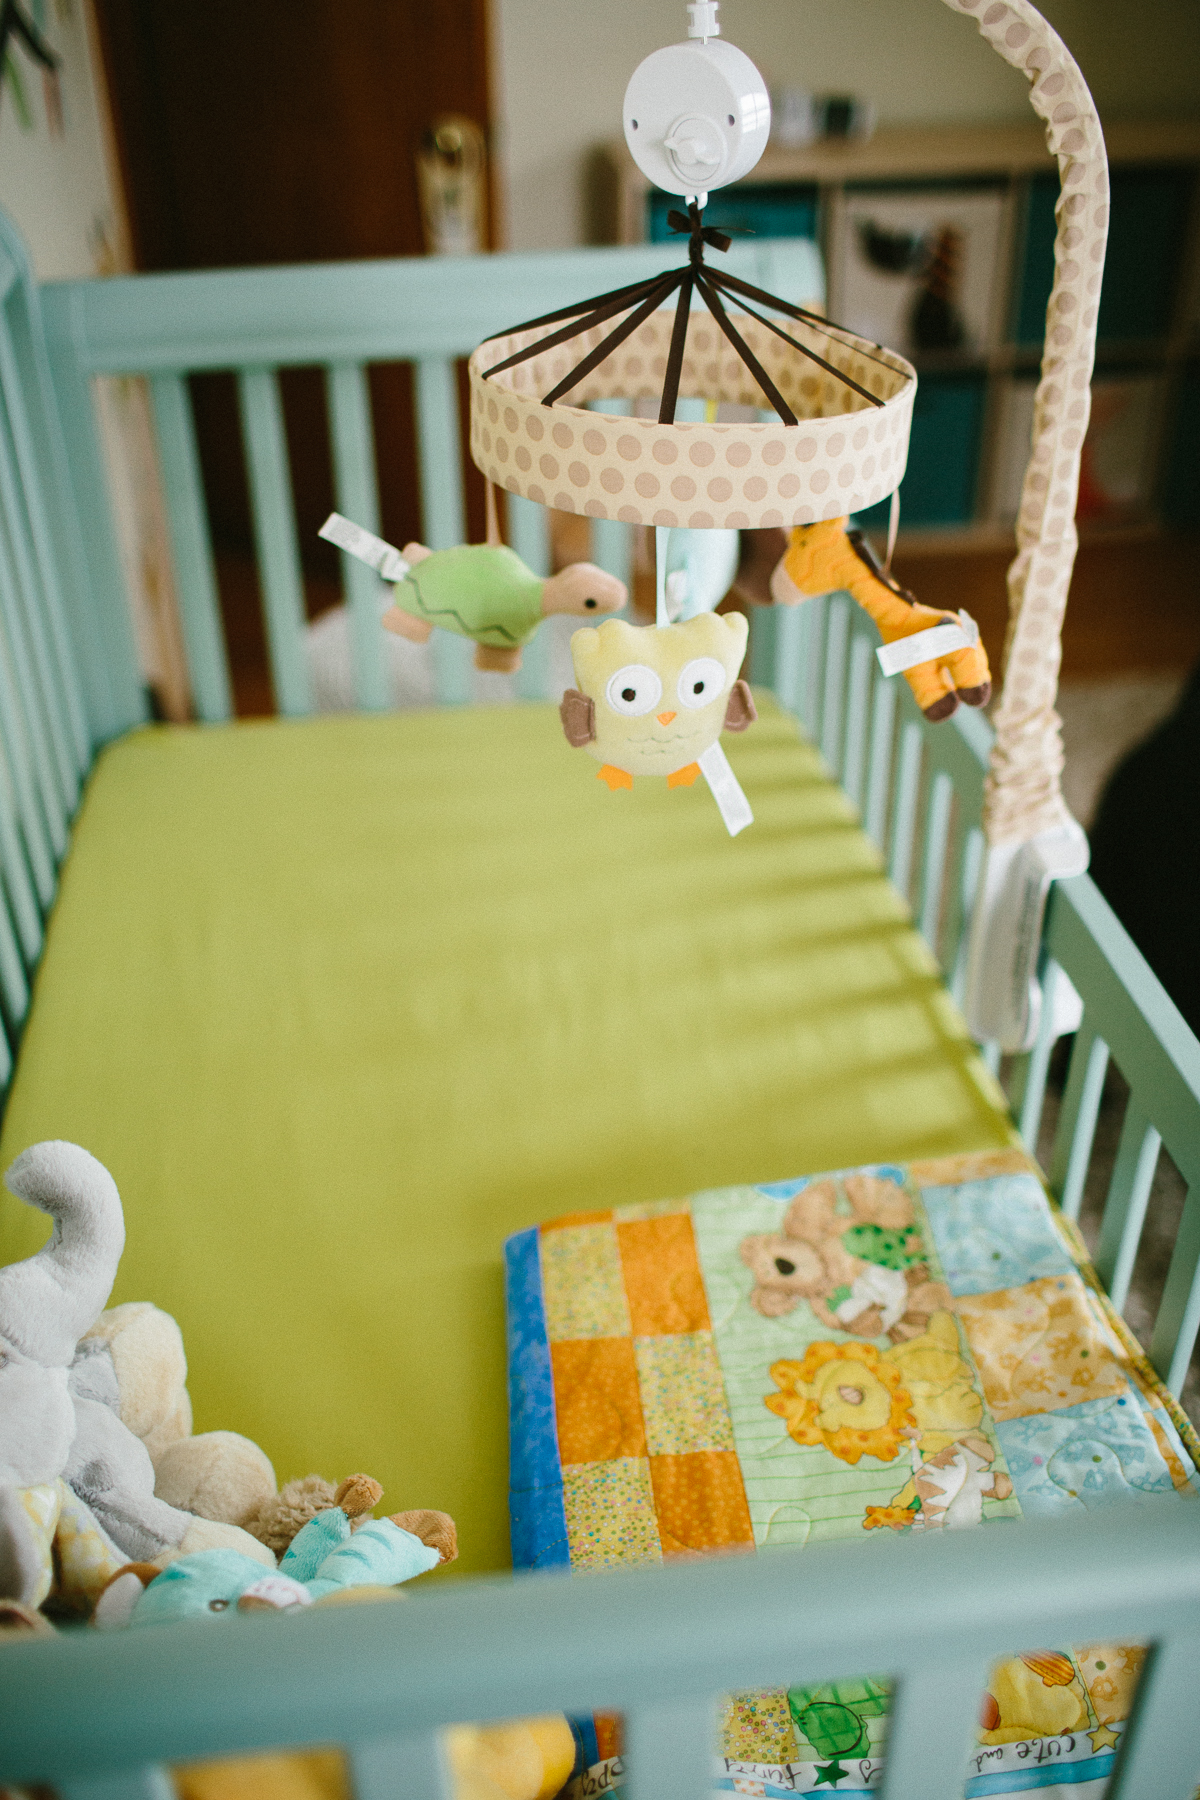 newborn nursery with mobile